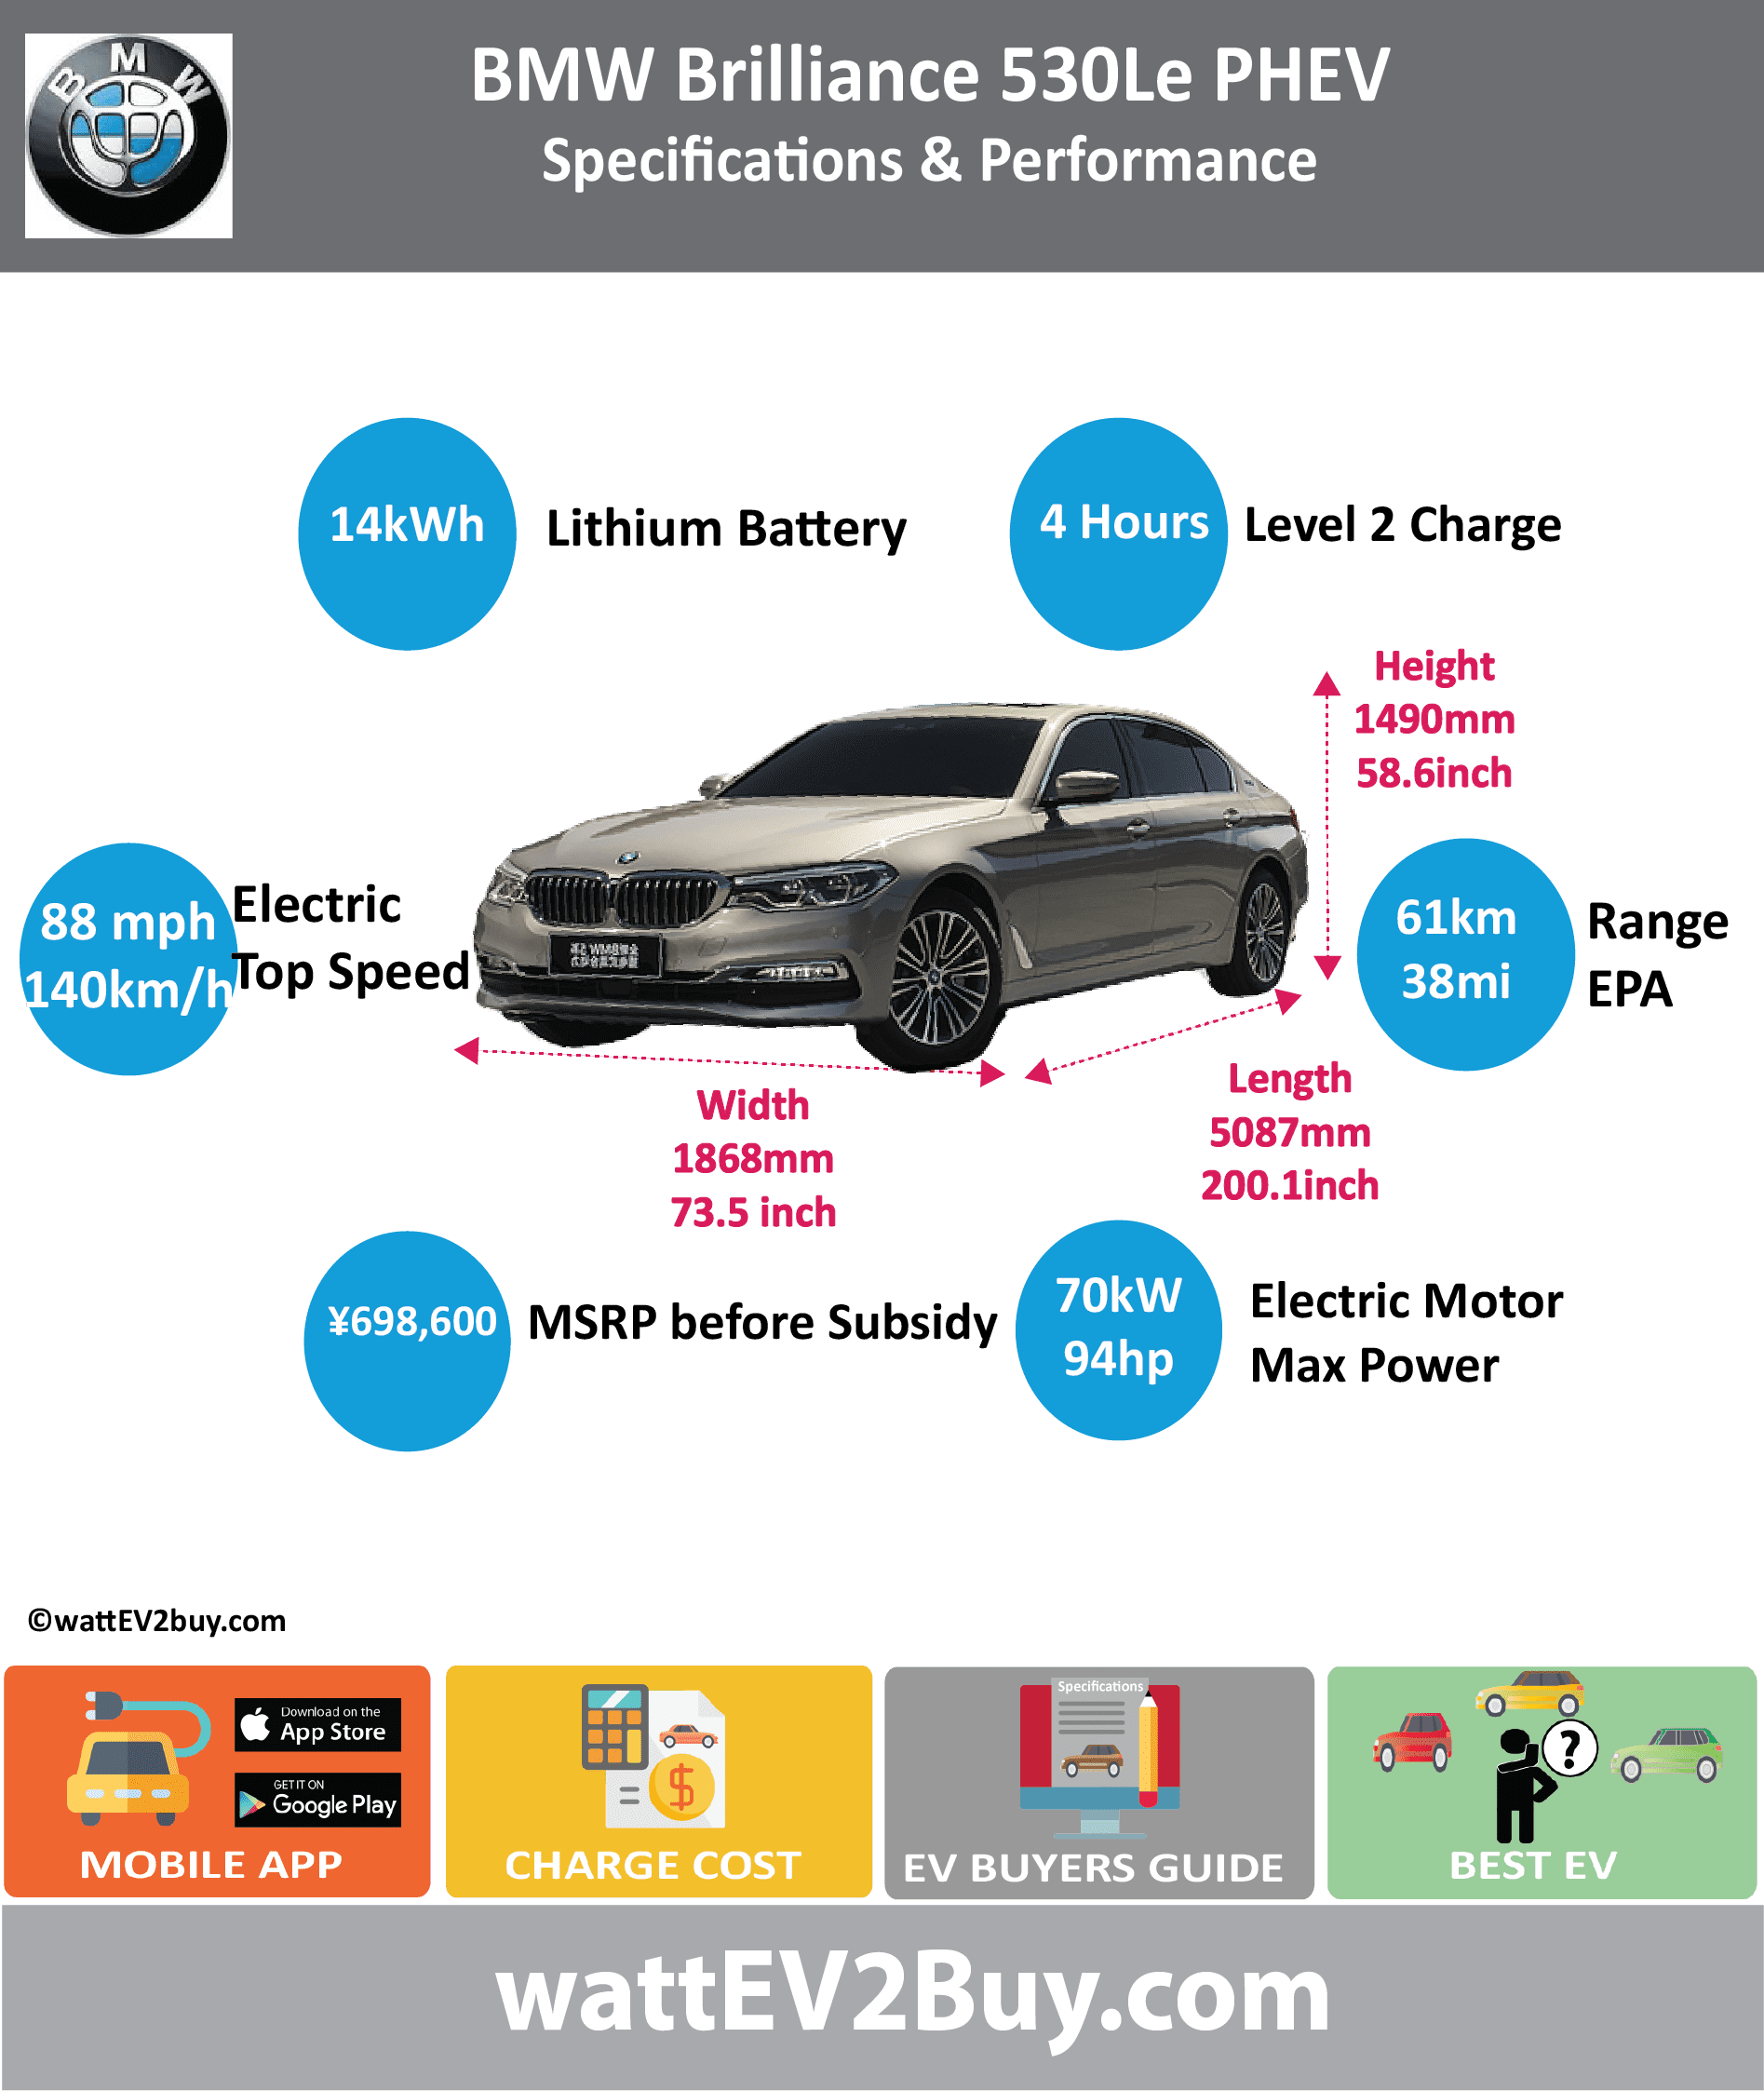 BMW Brilliance 530Le PHEV wattev2Buy.com 2015 2016 2017 2018 Battery Chemistry Lithium-Ion nickel-cobalt-manganese acid lithium-ion Battery Capacity kWh 14 Battery Nominal rating kWh Voltage V Weight (kg) 218 Modules Cells Battery Manufacturer Bosch Automotive Components (Suzhou) Co., Ltd Cooling Battery Warranty - years Battery Warranty - km Battery Electric Range - NEDC Mi 36.3 38.125 Battery Electric Range - NEDC km 58 61 Battery Electric Range - EPA Mi Battery Electric Range - EPA km Electric Top Speed - mph 75.0 87.5 Electric Top Speed - km/h 120 140 Acceleration 0 - 37.2mph sec Onboard Charger kW LV 1 Charge kW LV 1 Charge Time (Hours) LV 2 Charge kW LV 2 Charge Time (Hours) 4 LV 3 CCS/Combo kW LV 3 Charge Time (min to 80%) Charge Connector MPGe Combined - miles MPGe Combined - km MPGe City - miles MPGe City - km MPGe Highway - miles MPGe Highway - km Max Power - hp 93.8714 93.8714 Max Power - kW 70 70 Max Torque - lb.ft Max Torque - N.m 250 250 Electric Motor Electric Motor Output kW Electric Motor Output hp Transmission Energy Consumption kWh/100miles Utility Factor MSRP (before incentives & destination) ¥698,600.00 Combustion 2.0L 4 cylinder turbocharged gasoline engine Extended Range - mile Extended Range - km ICE Max Power - hp 242 ICE Max Power - kW 160 135 ICE Max Torque - lb.ft ICE Max Torque - N.m 310 290 ICE Top speed - mph 148.0 ICE Top speed - km/h 237 233 ICE Acceleration 0 - 62mph sec 7.1 ICE MPGe Combined - miles ICE MPGe Combined - km ICE MPGe City - miles ICE MPGe City - km ICE MPGe Highway - miles ICE MPGe Highway - km ICE Transmission ICE Fuel Consumption l/100km ICE Emission Rating ICE Emissions CO2/mi grams ICE Emissions CO2/km grams 49.0 Total System Max Power - hp 272 252 Max Power - kW 185 Max Torque - lb.ft Max Torque - N.m 420 Fuel Consumption l/100km 1.9 MPGe Combined - miles Vehicle Seats 5 Doors Dimensions GVWR (kg) 2565 Curb Weight (kg) 2145 Ground Clearance (mm) Lenght (mm) 5087 Width (mm) 1868 Height (mm) 1490 Wheelbase (mm) 3108 Lenght (inc) 0.0 200.1 Width (inc) 0.0 73.5 Height (inc) 0.0 58.6 Wheelbase (inc) 0.0 122.3 Other Chinese Name 宝马5 系插电 式 混 合动力 华晨宝马全新530Le插电式混动版 Model Code BMW7201AMHEV (BMW530Le) WEBSITE